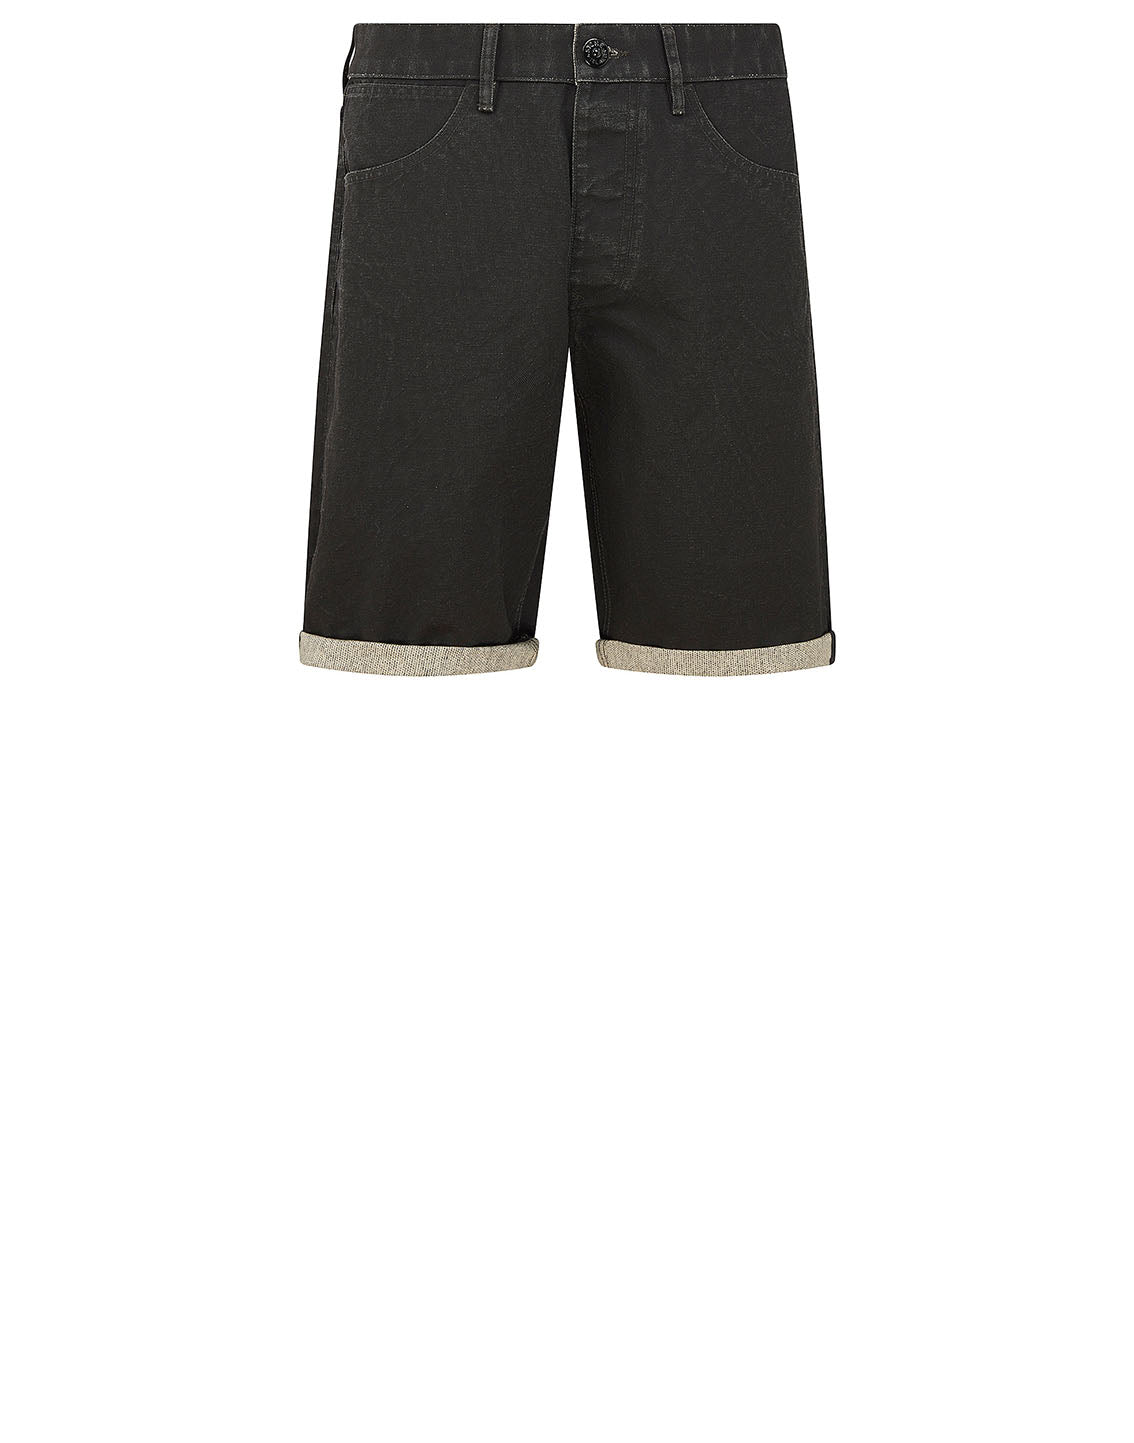 L11J1 PANAMA PLACCATO Bermuda Shorts in Black